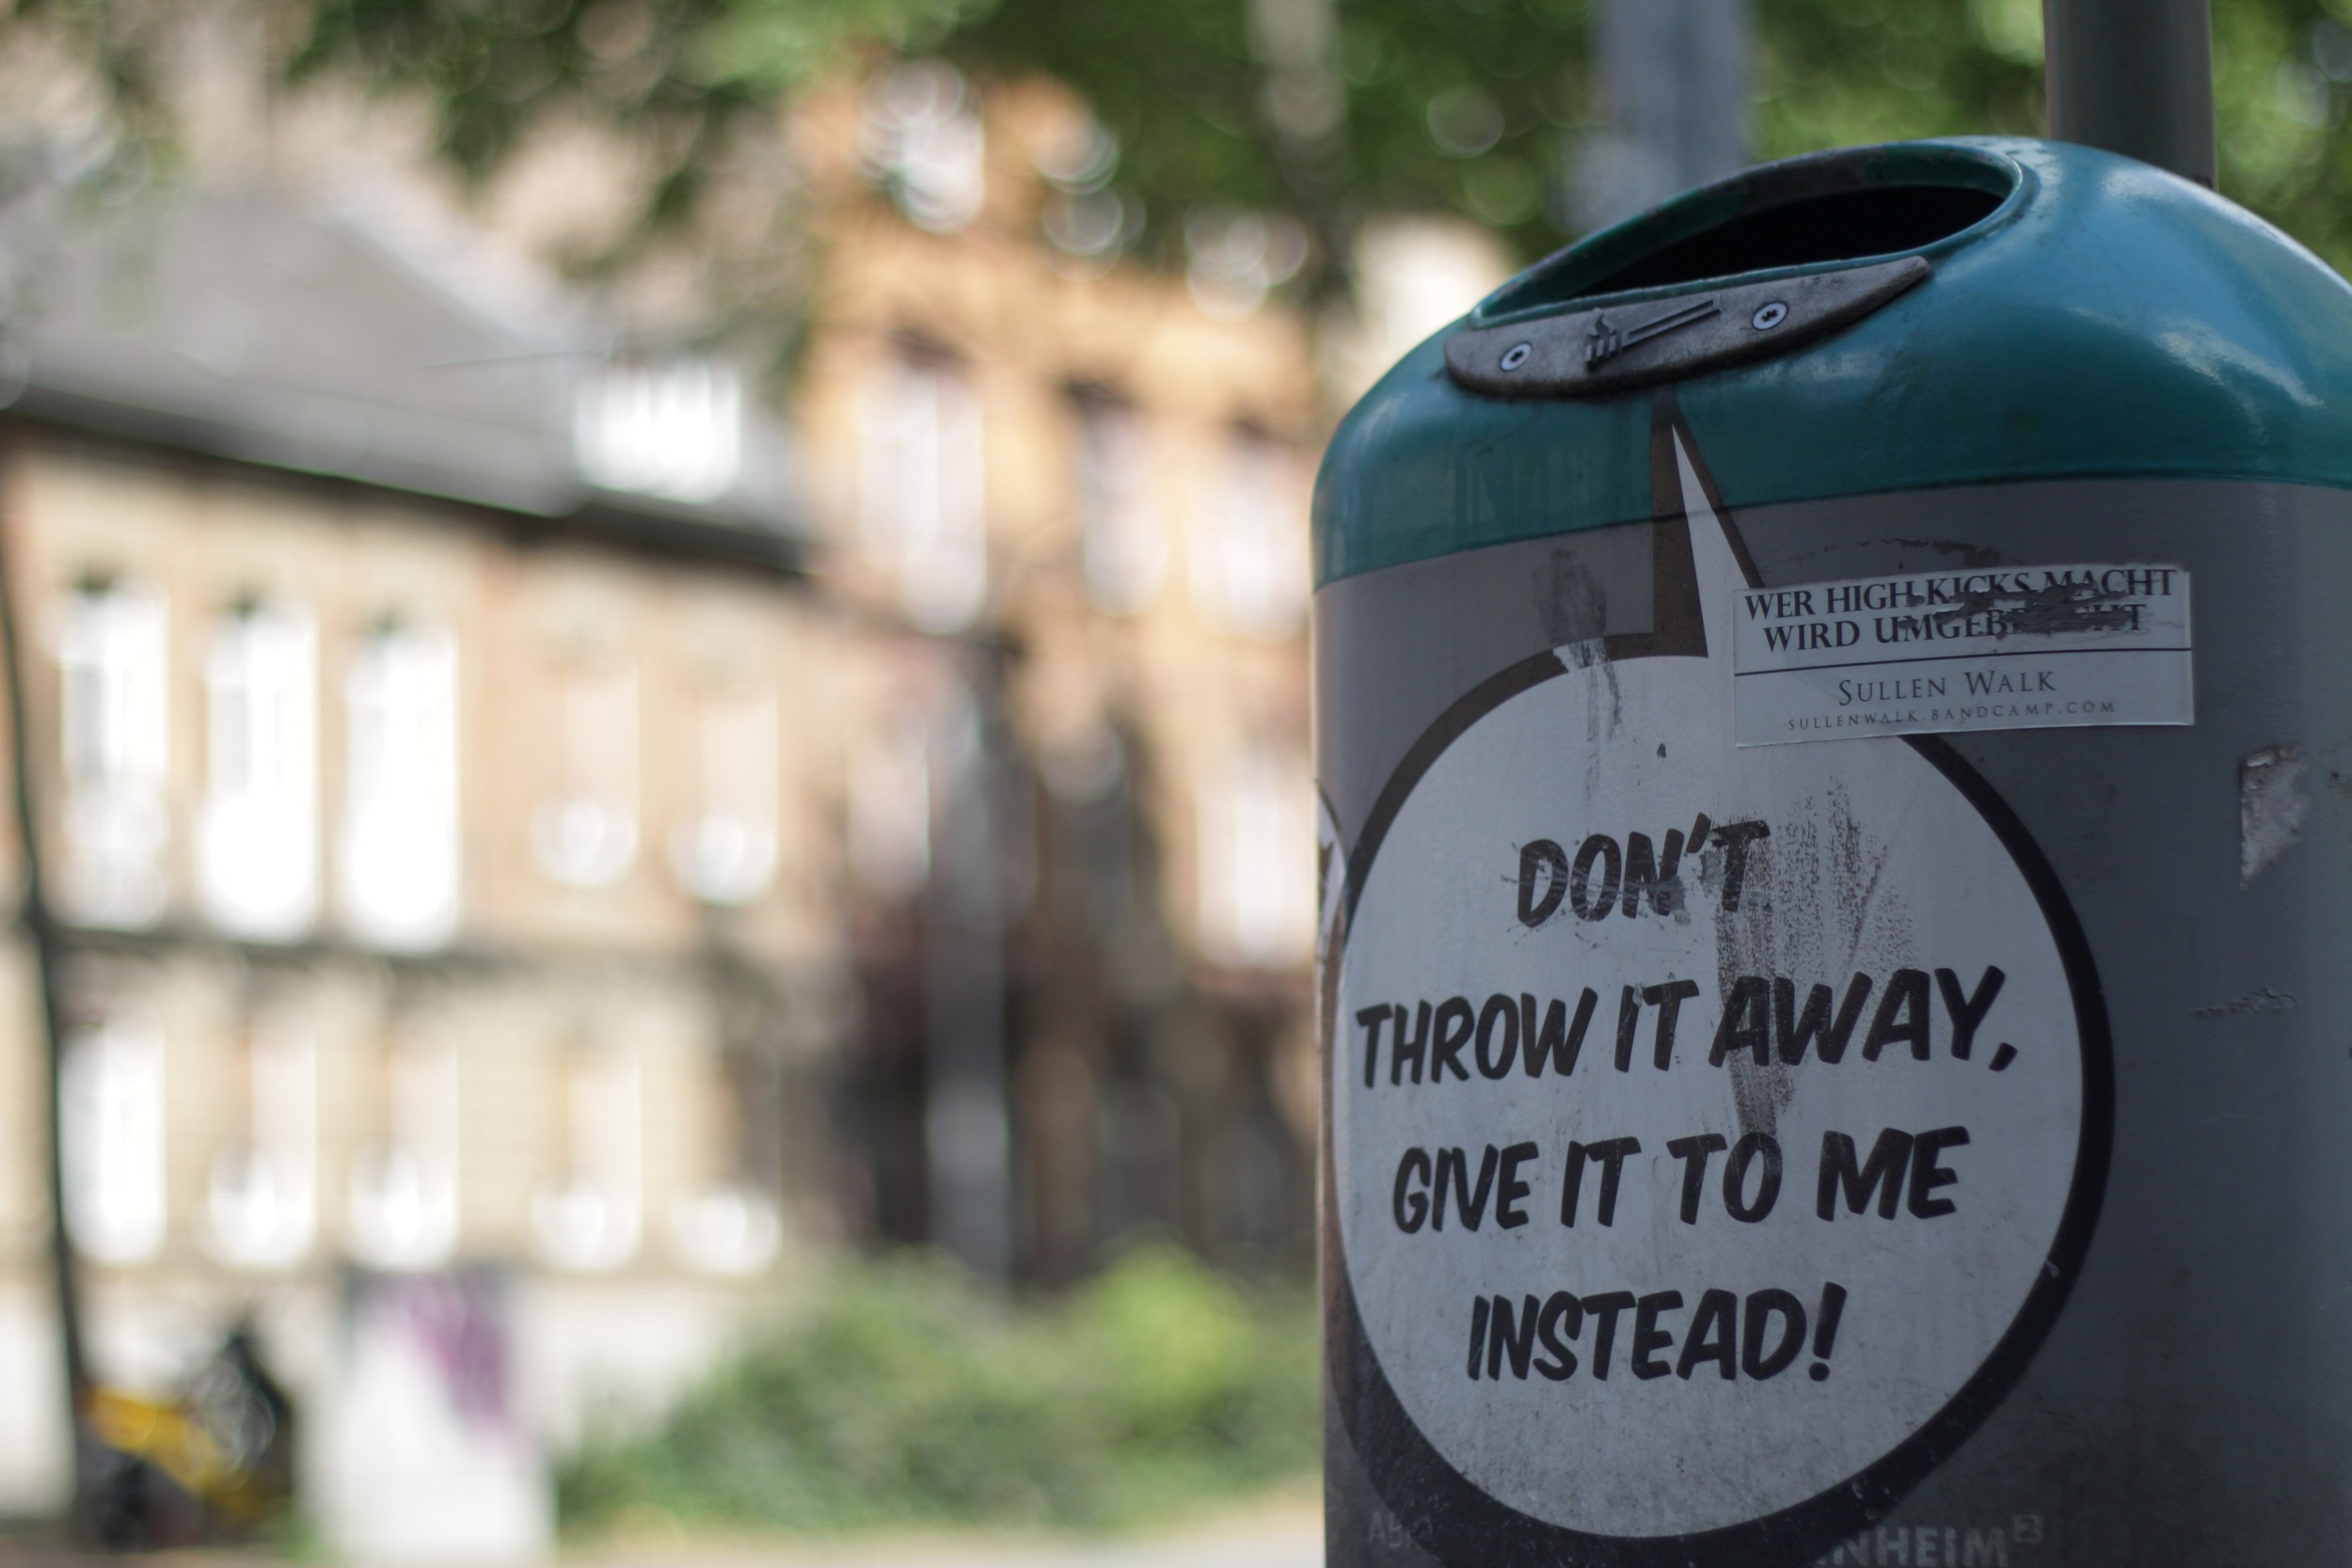 Garbage cans scattered around the city in multiple languages, including English